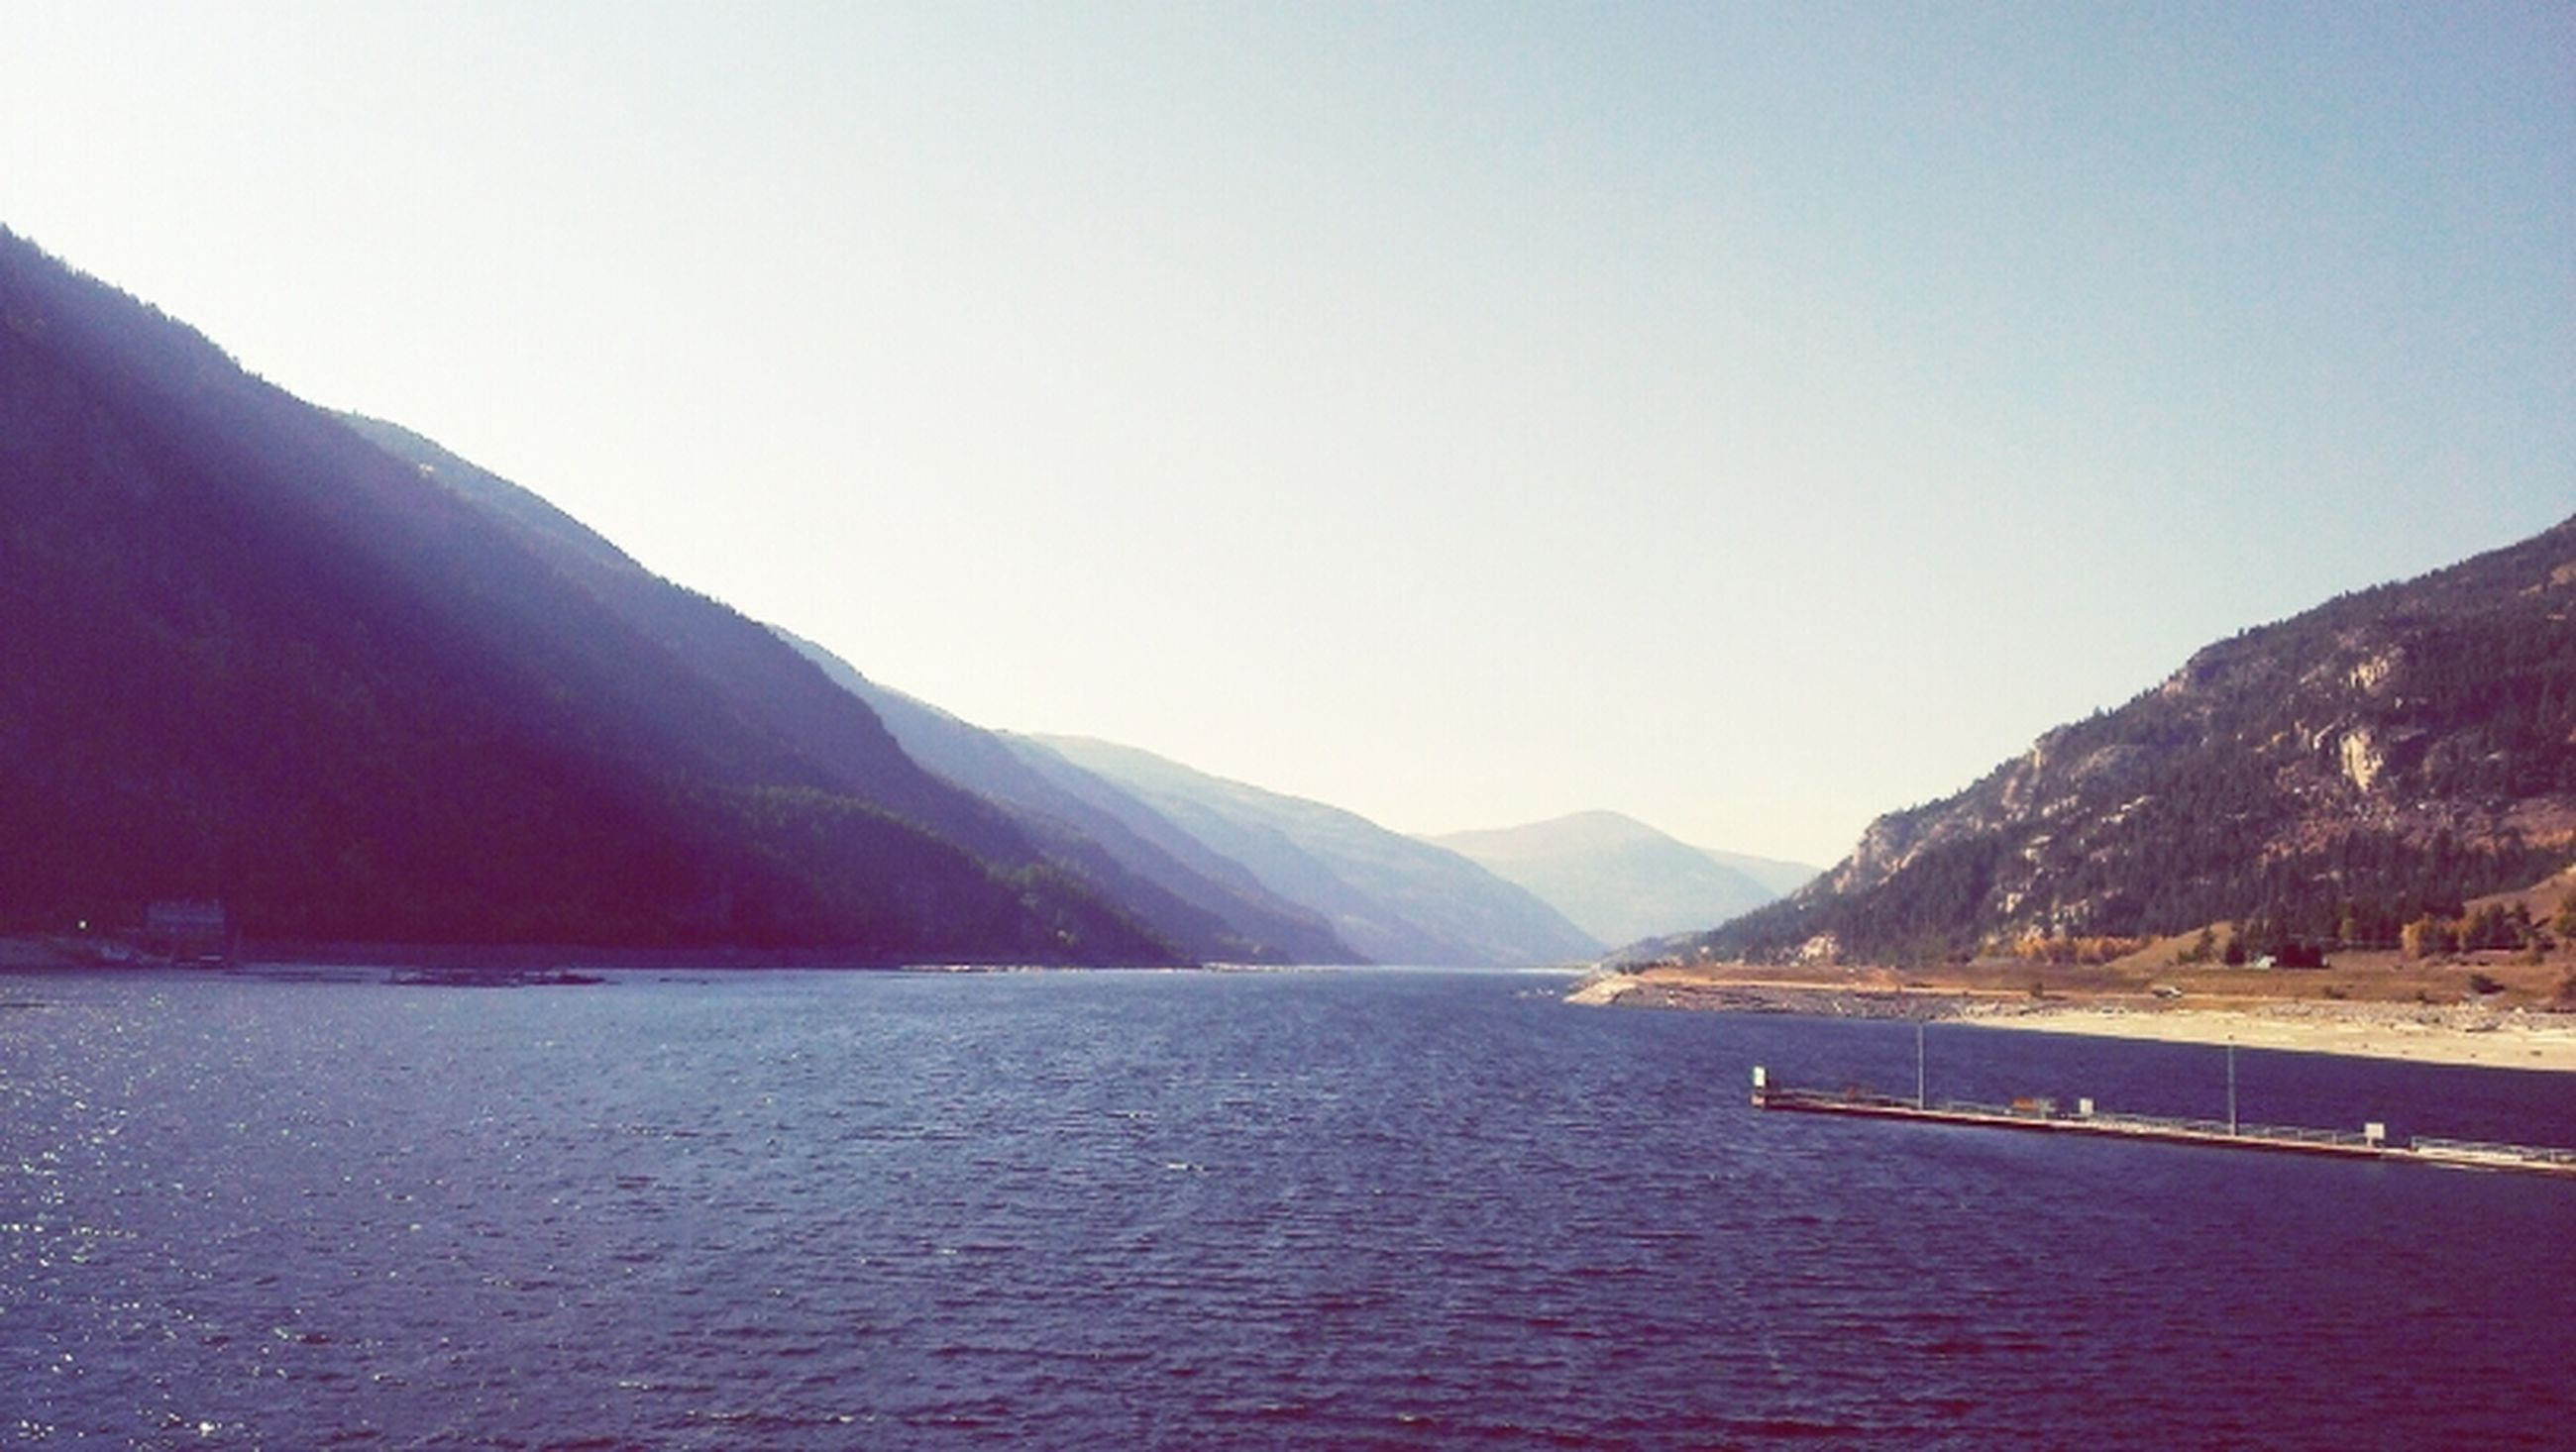 mountain, water, clear sky, tranquil scene, mountain range, scenics, tranquility, copy space, beauty in nature, lake, waterfront, nature, river, idyllic, non-urban scene, sea, outdoors, no people, landscape, day